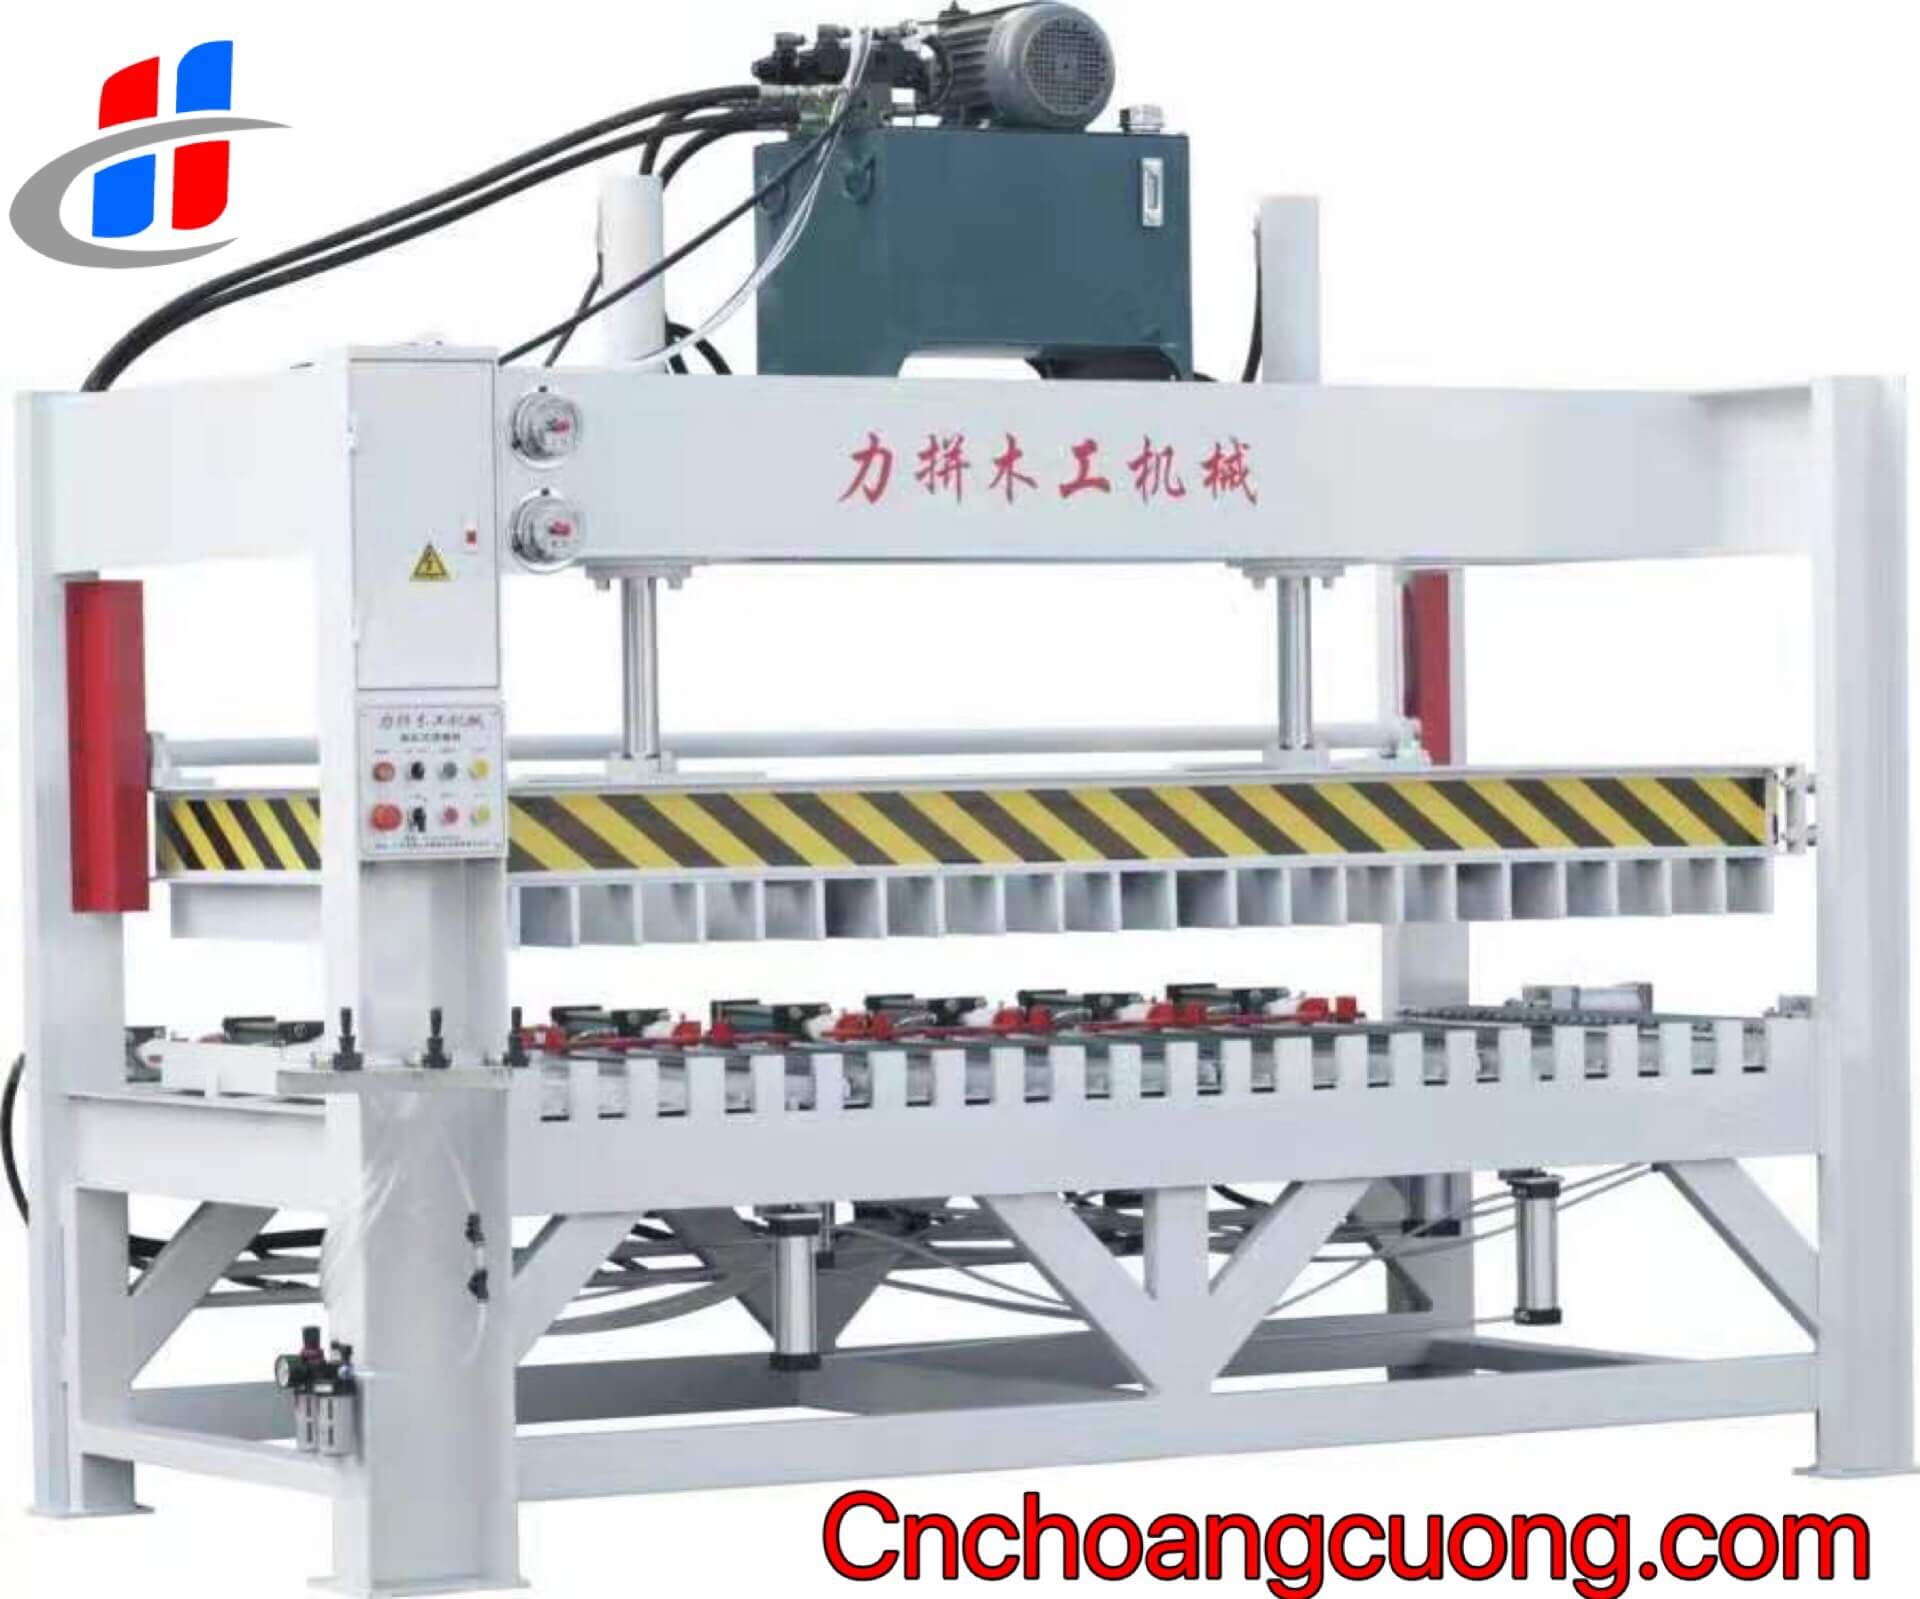 https://cnchoangcuong.com/?post_type=product&p=2195&preview=true